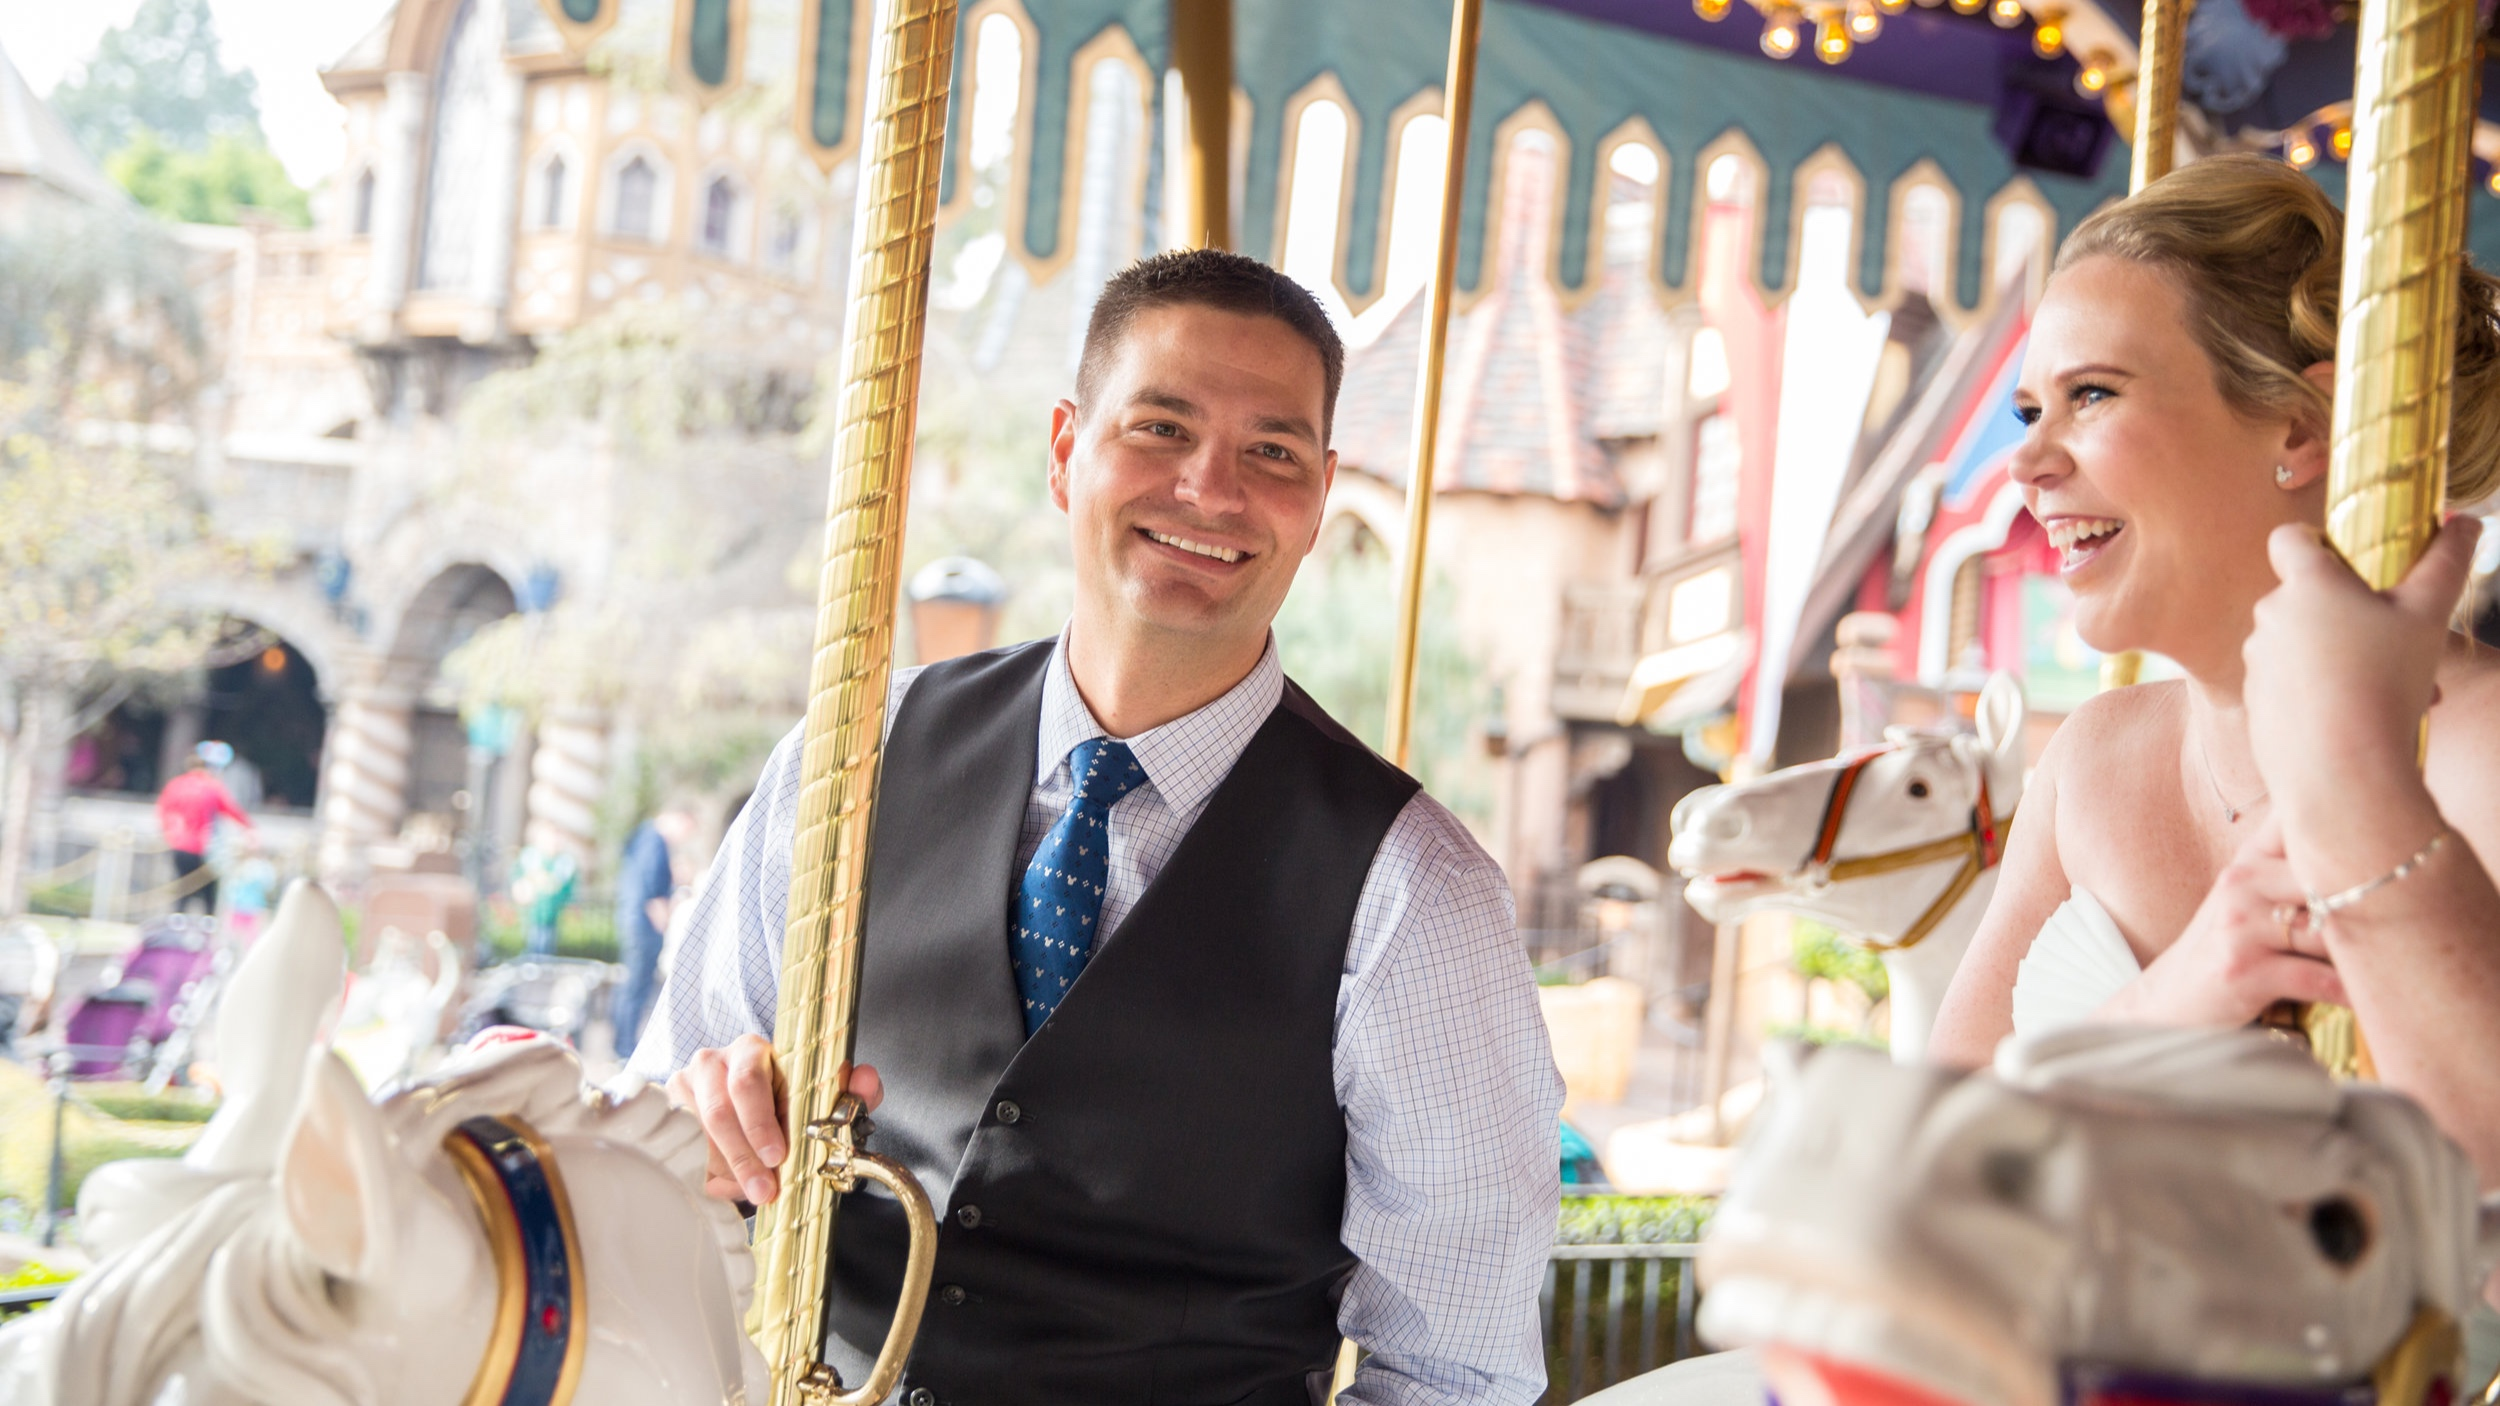 Celebrating our Anniversary at Disneyland. Photo: Ryan Hartford/ Ecliptic Media Photo